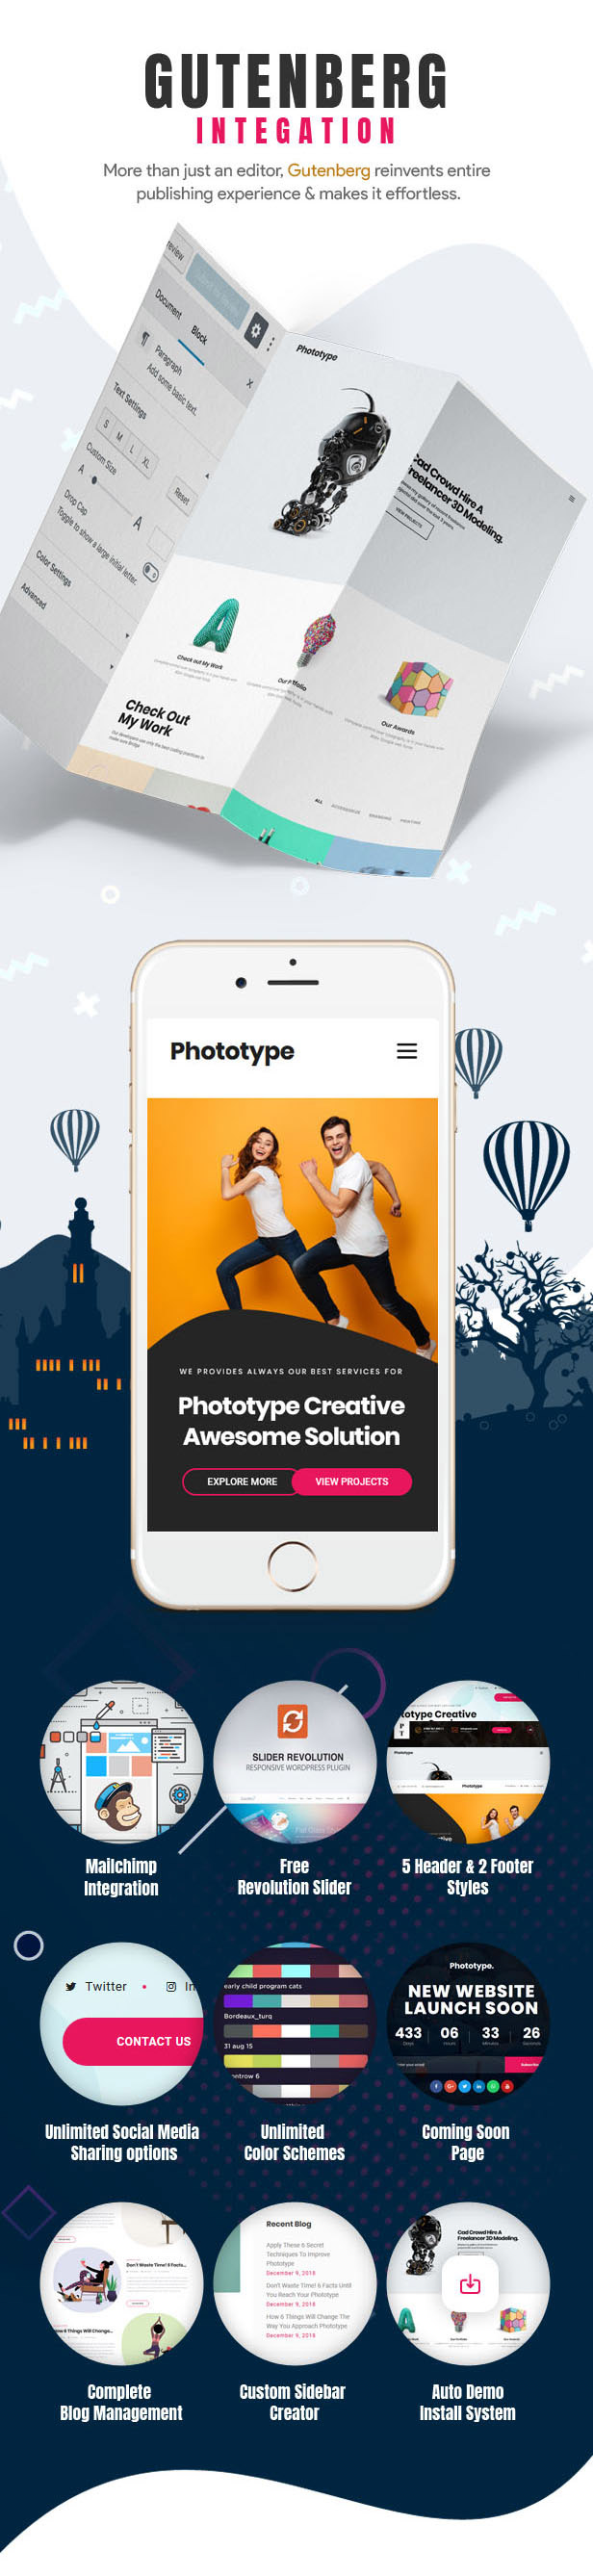 Phototype - New Elementor Portoflio WordPress Theme 2019 for Agency, Photography Sites - 4